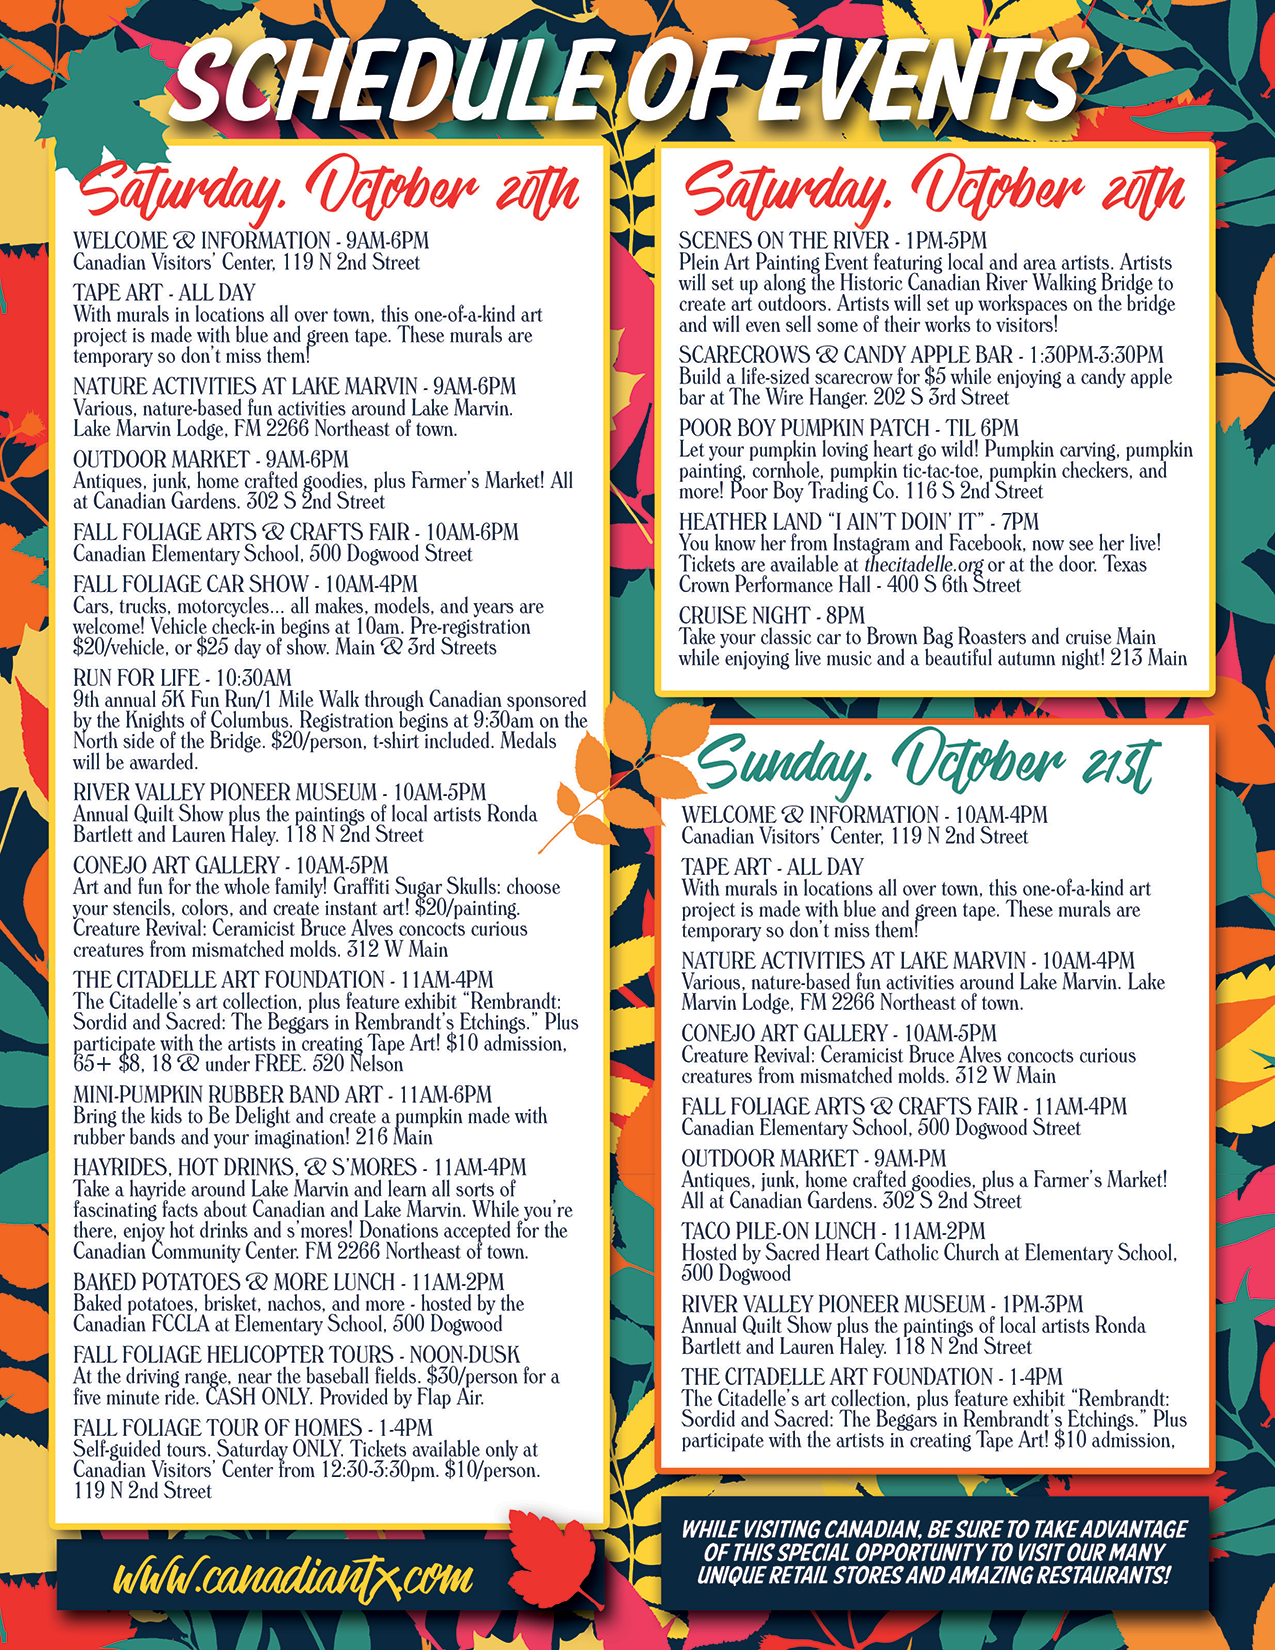 2018 fall festival events